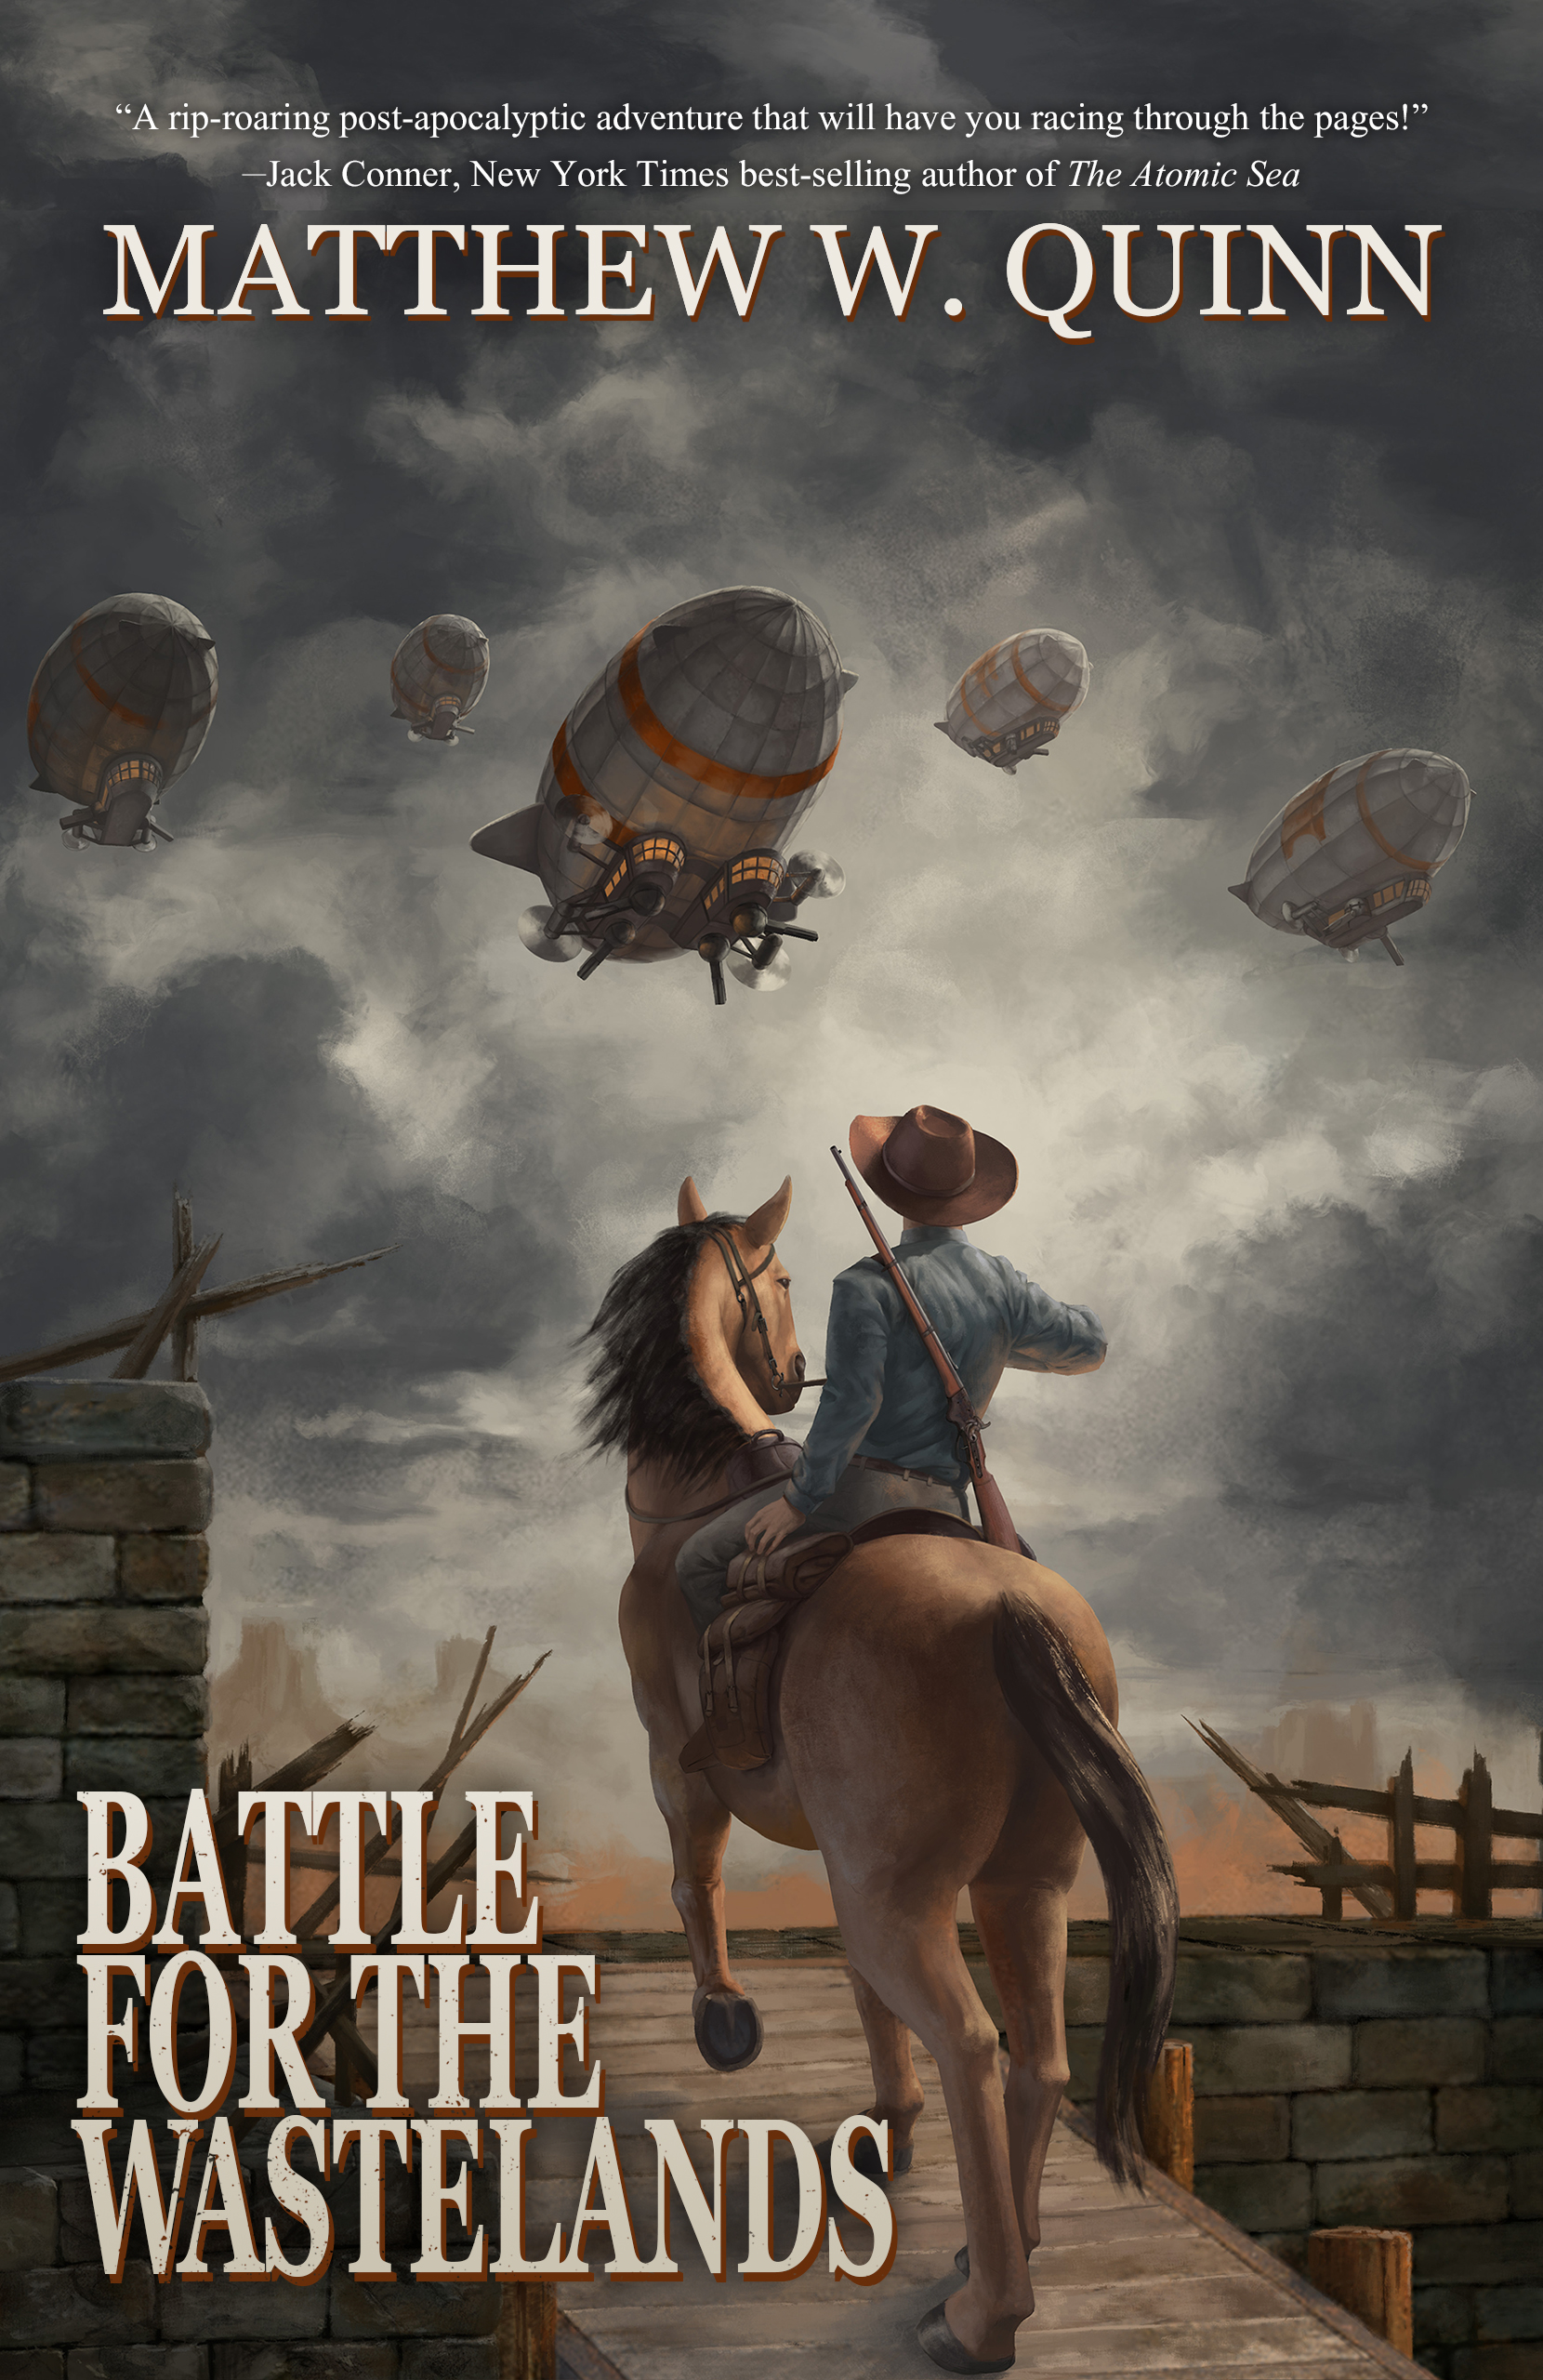 Battle E-Book Cover 2.0 With Certain Dimensions